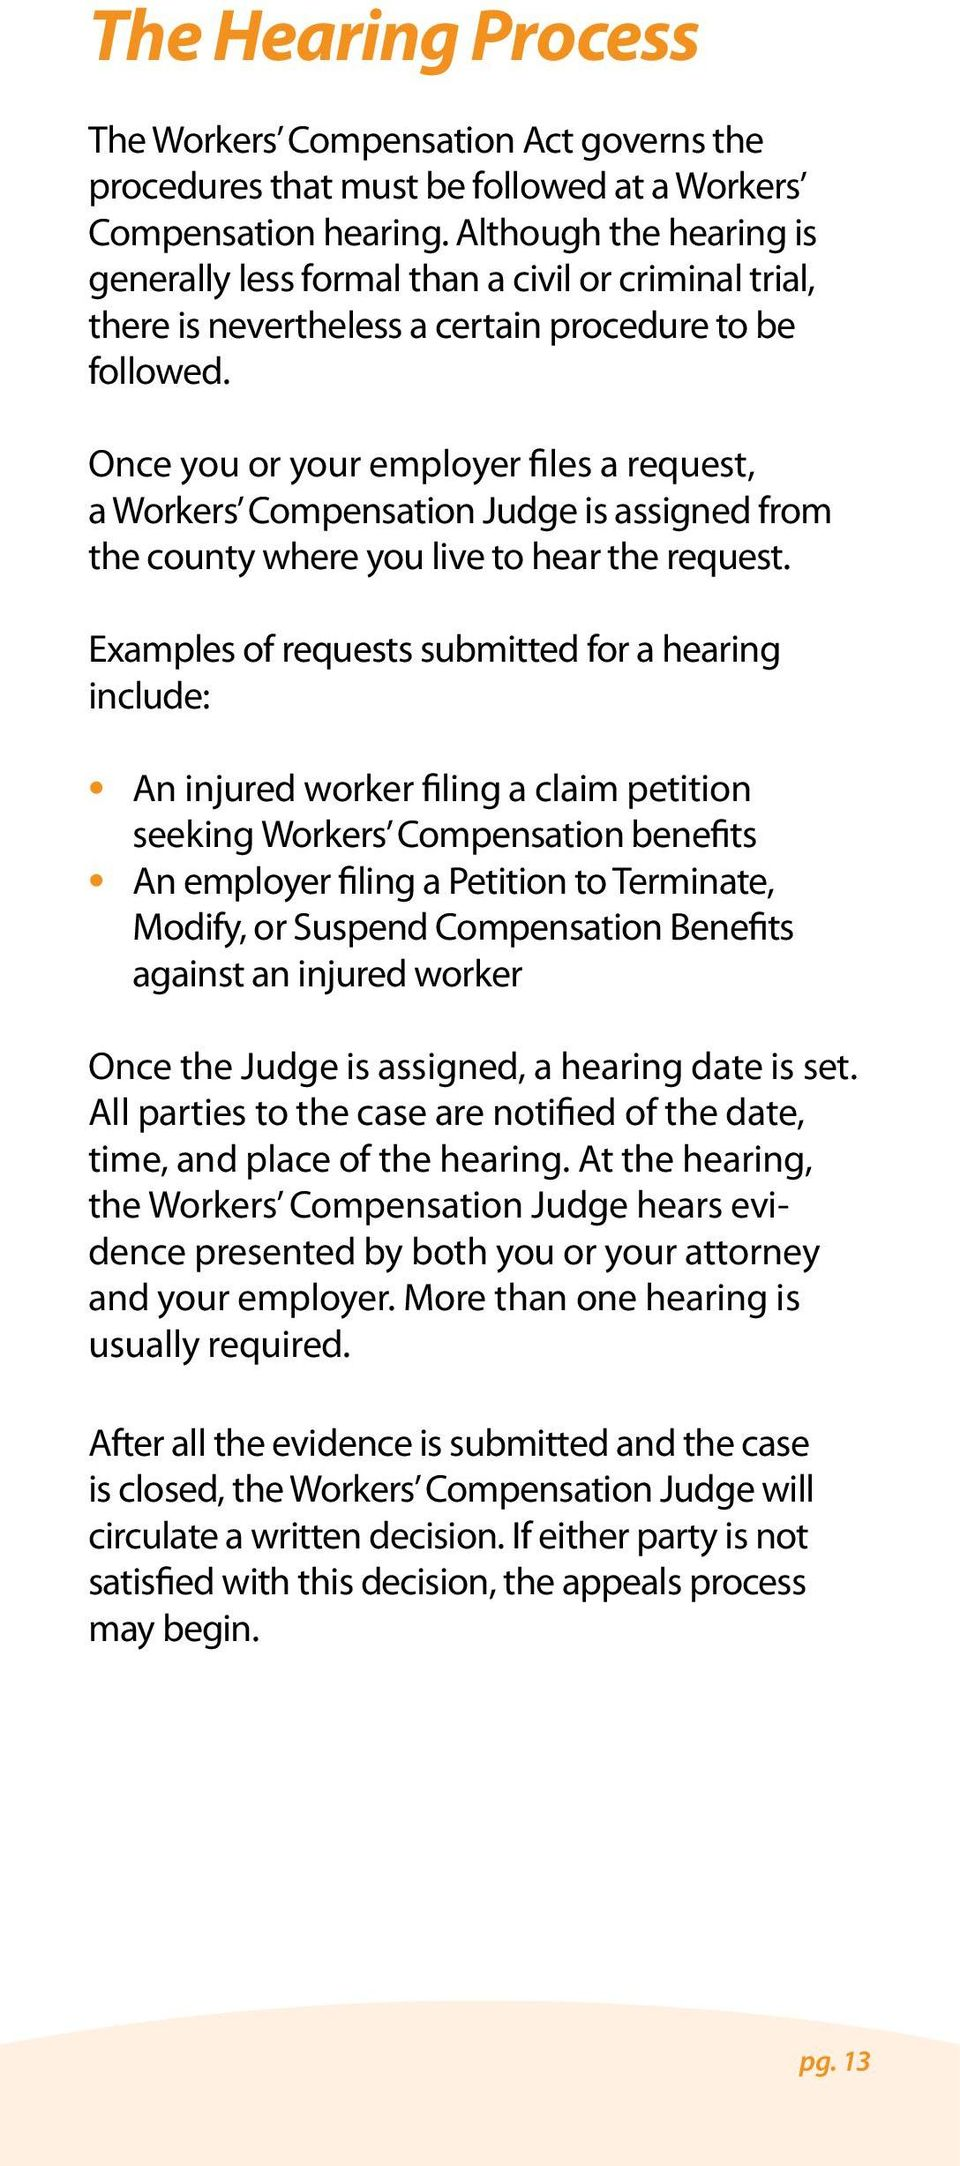 Once you or your employer files a request, a Workers Compensation Judge is assigned from the county where you live to hear the request.